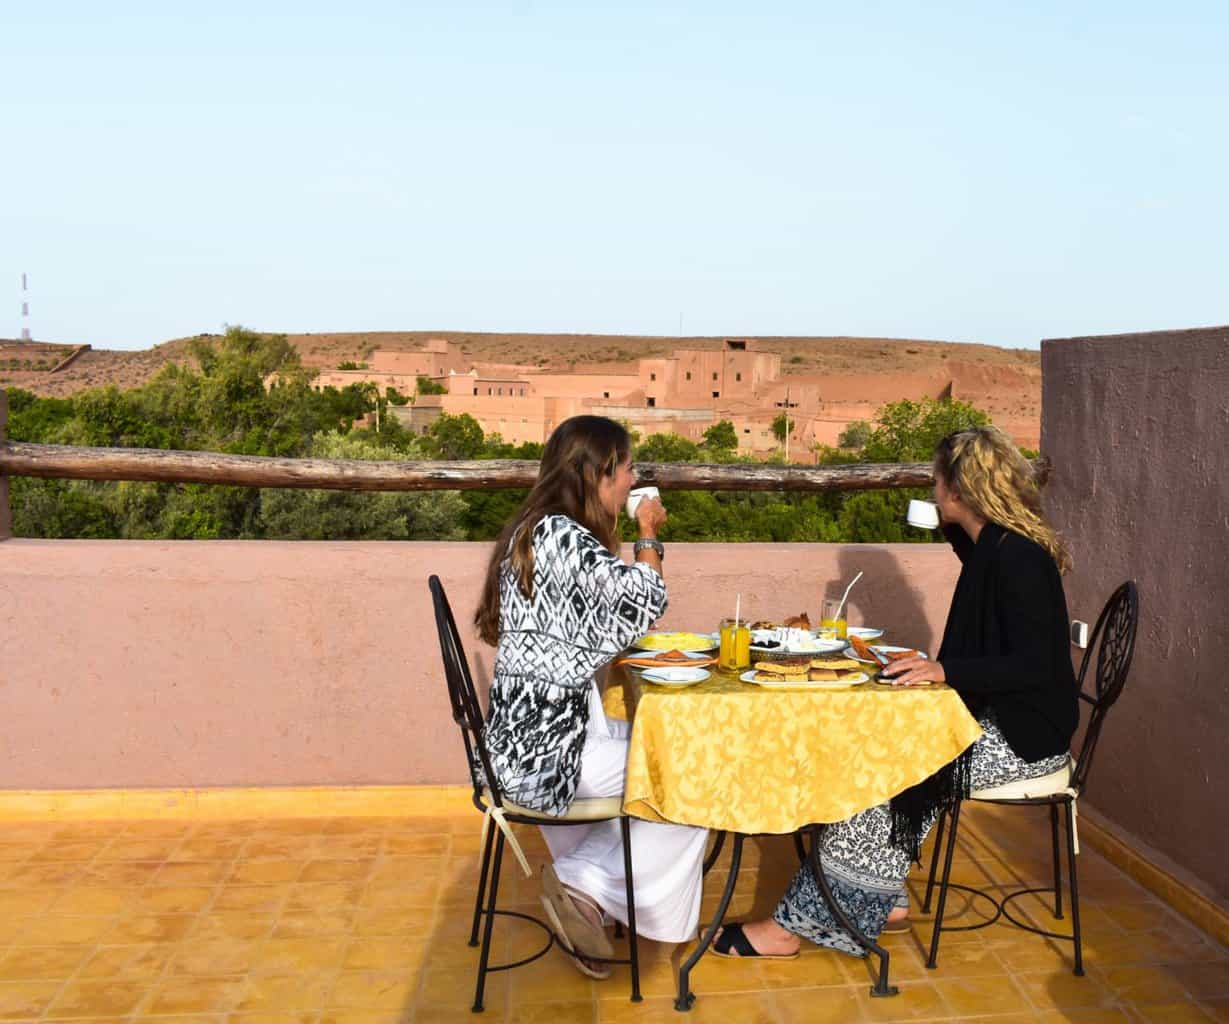 where to stay in the Sahara Desert